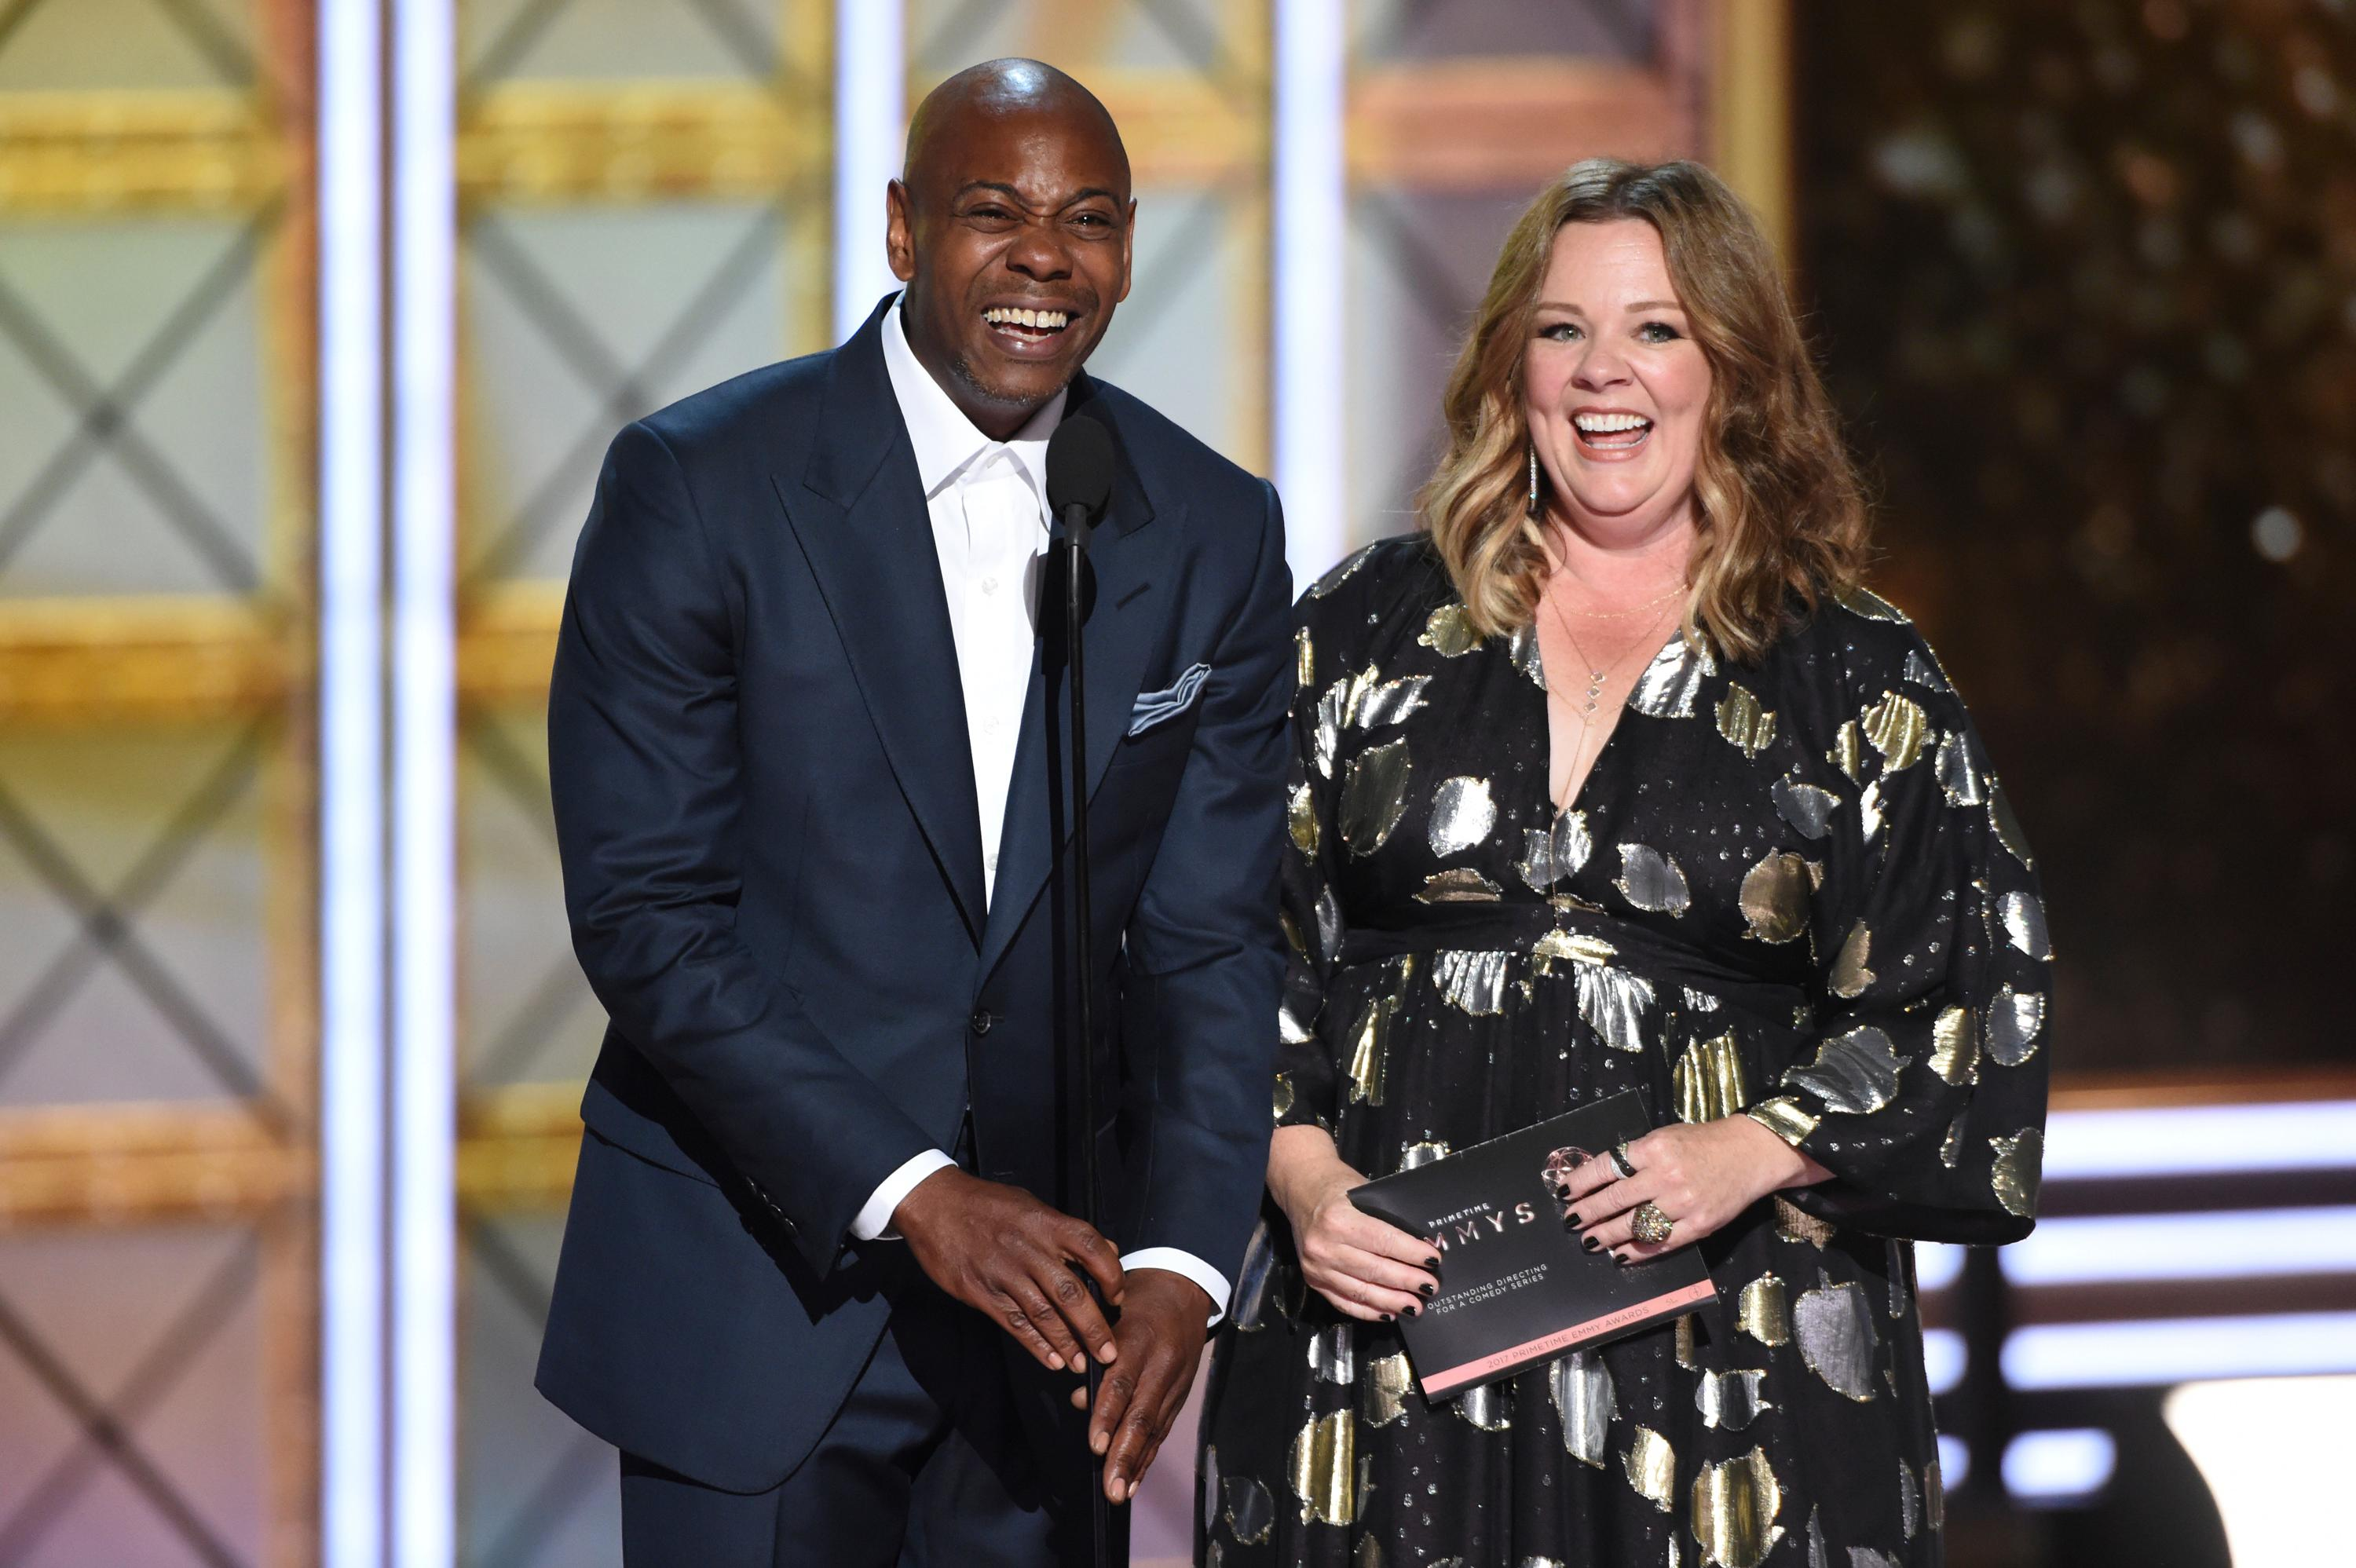 Dave Chappelle, left, and Melissa McCarthy present the award for outstanding directing for a comedy series at the 69th Primetime Emmy Awards on Sunday, Sept. 17, 2017, at the Microsoft Theater in Los Angeles. (Photo by Phil McCarten/Invision for the Television Academy/AP Images)